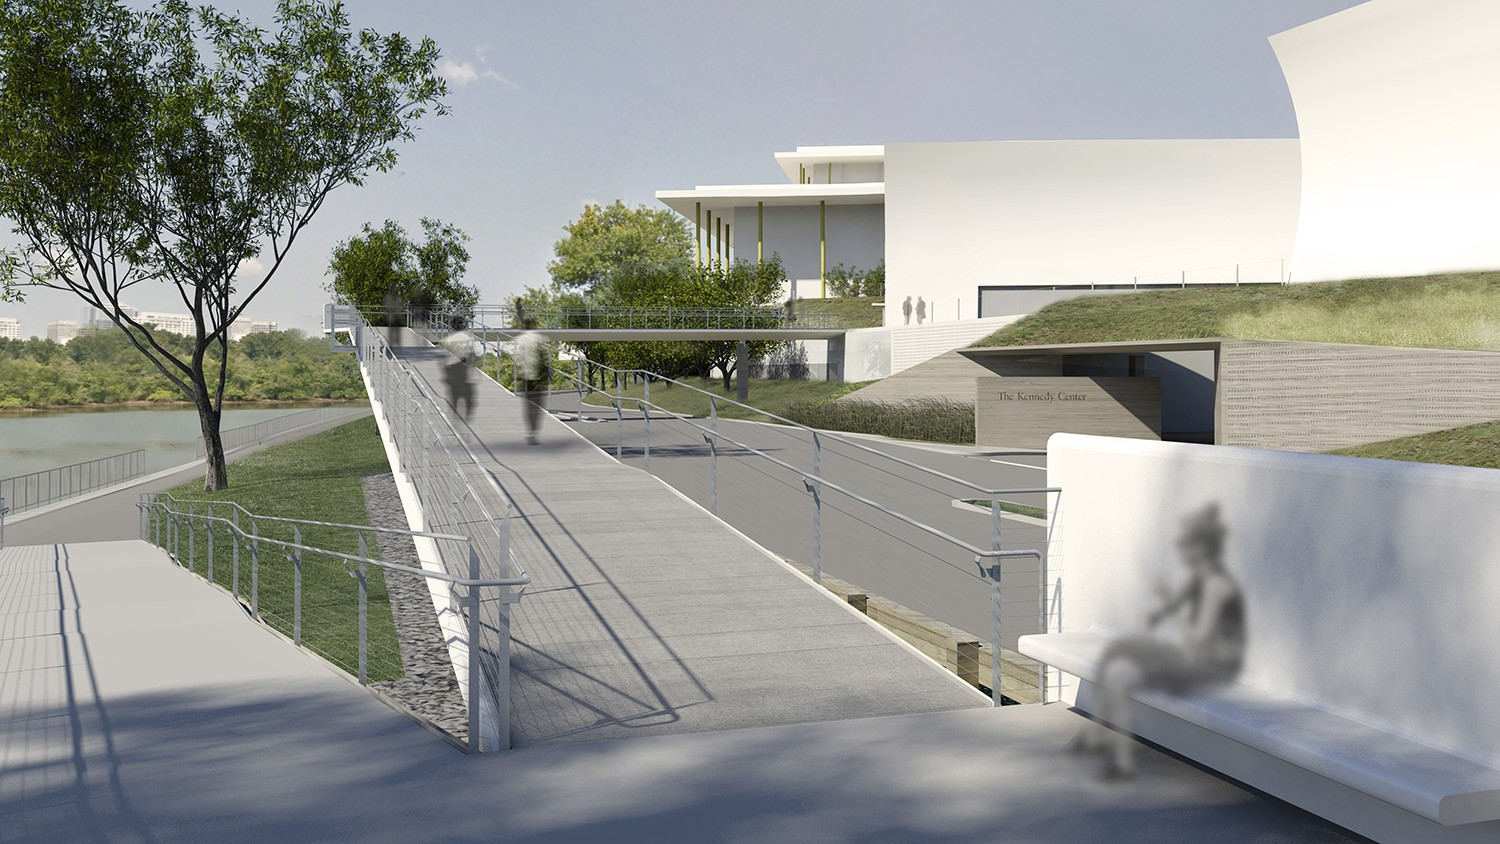 https://s3.us-east-2.amazonaws.com/steven-holl/uploads/projects/project-images/StevenHollArchitects_JFK_ViewfromBridgeatLandingWH.jpg